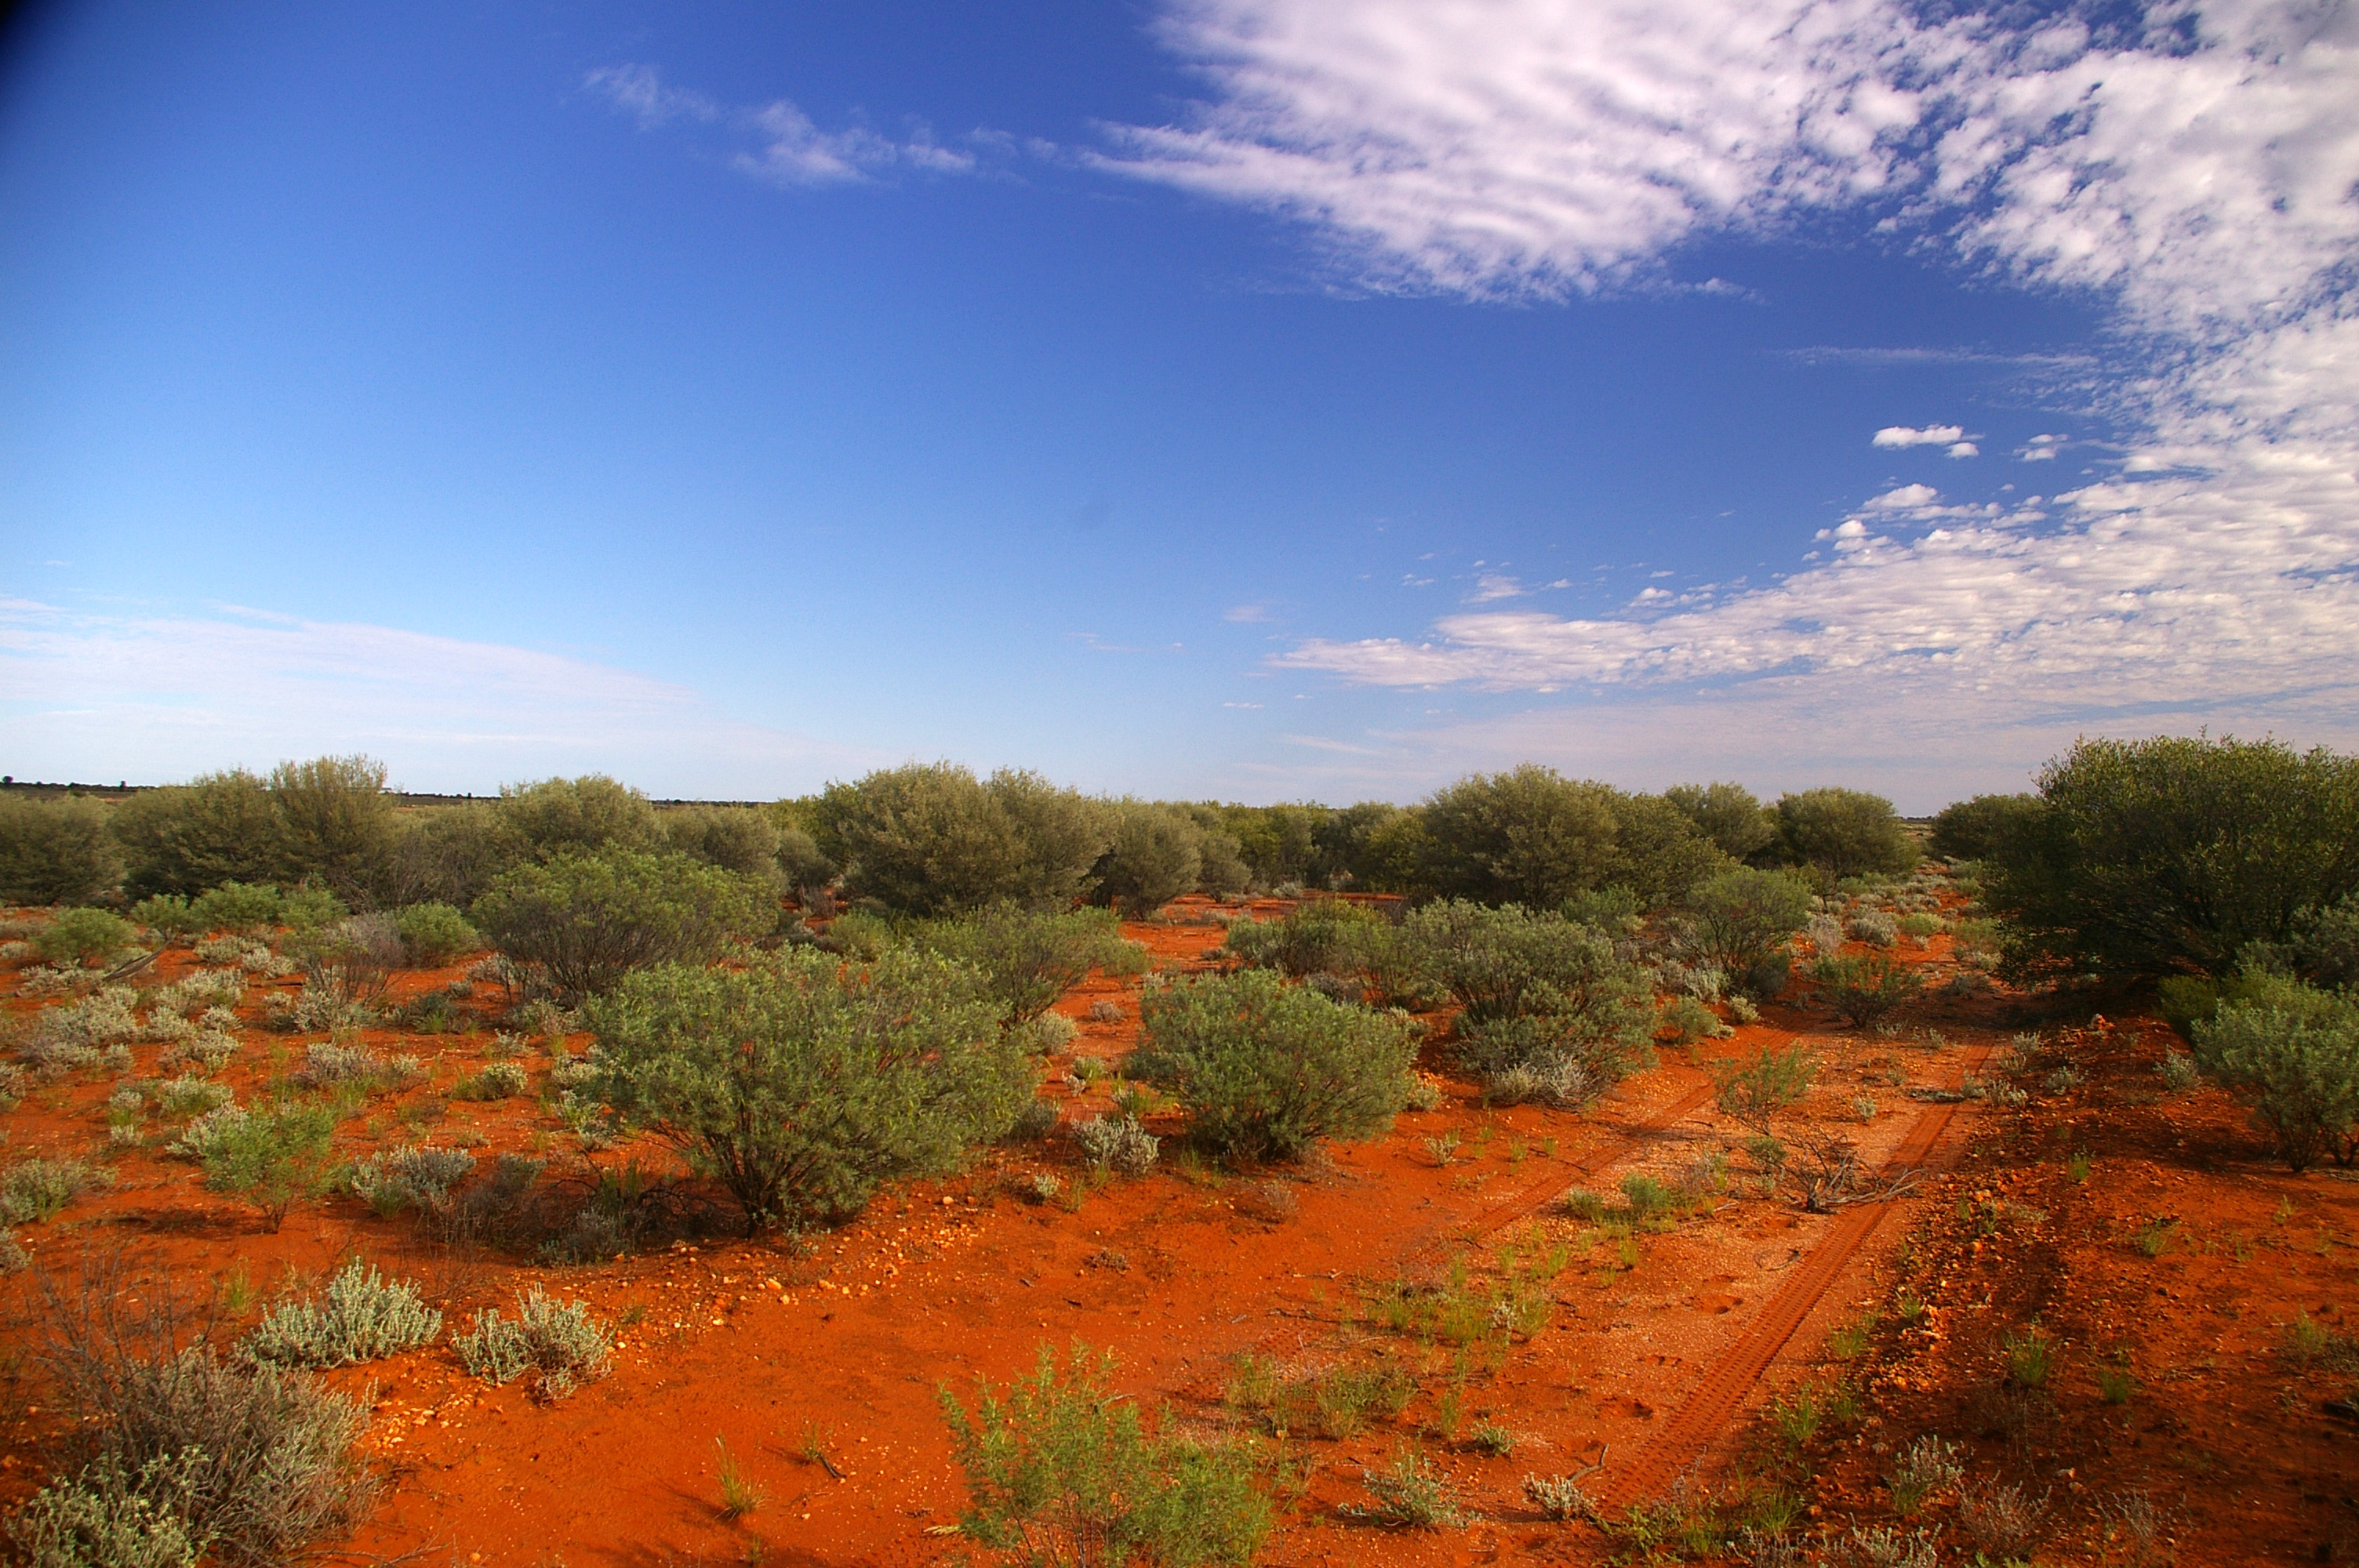 Photo of desert with red earth, plants and small trees. There is tyre marks in bottom right of photo, and blue sky in top half with a few clouds on the right.